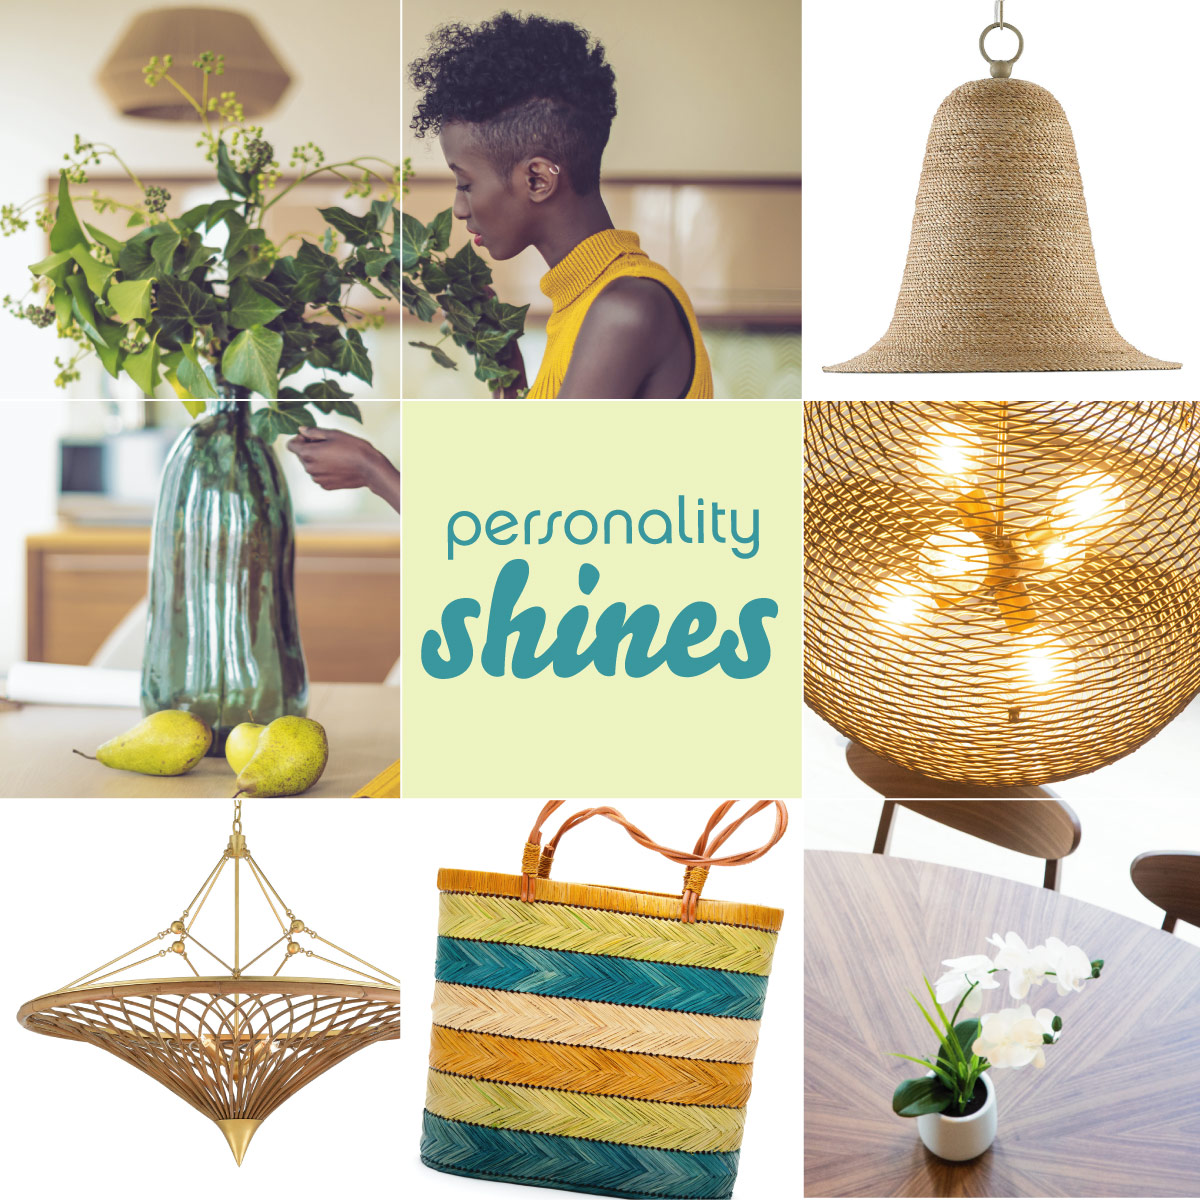 Brighten up your home with fresh lighting ideas